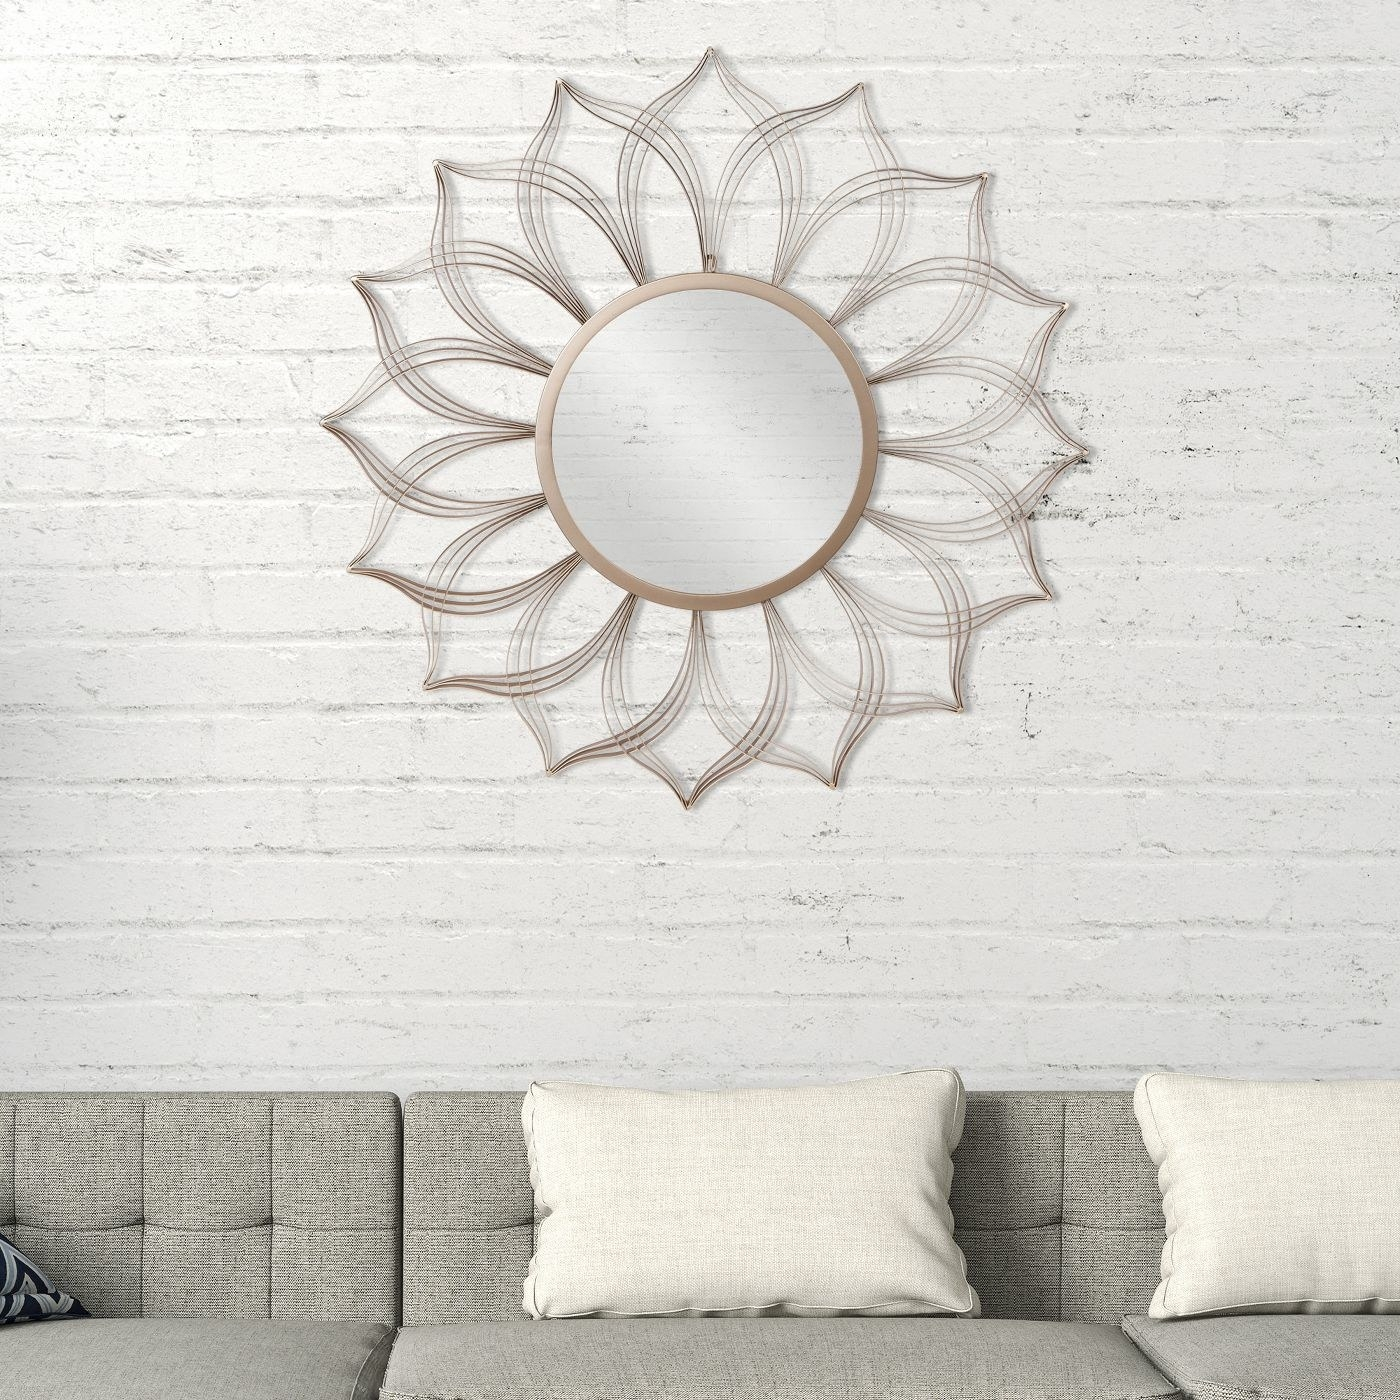 Champagne flower petal mirror on a white brick wall over a gray couch